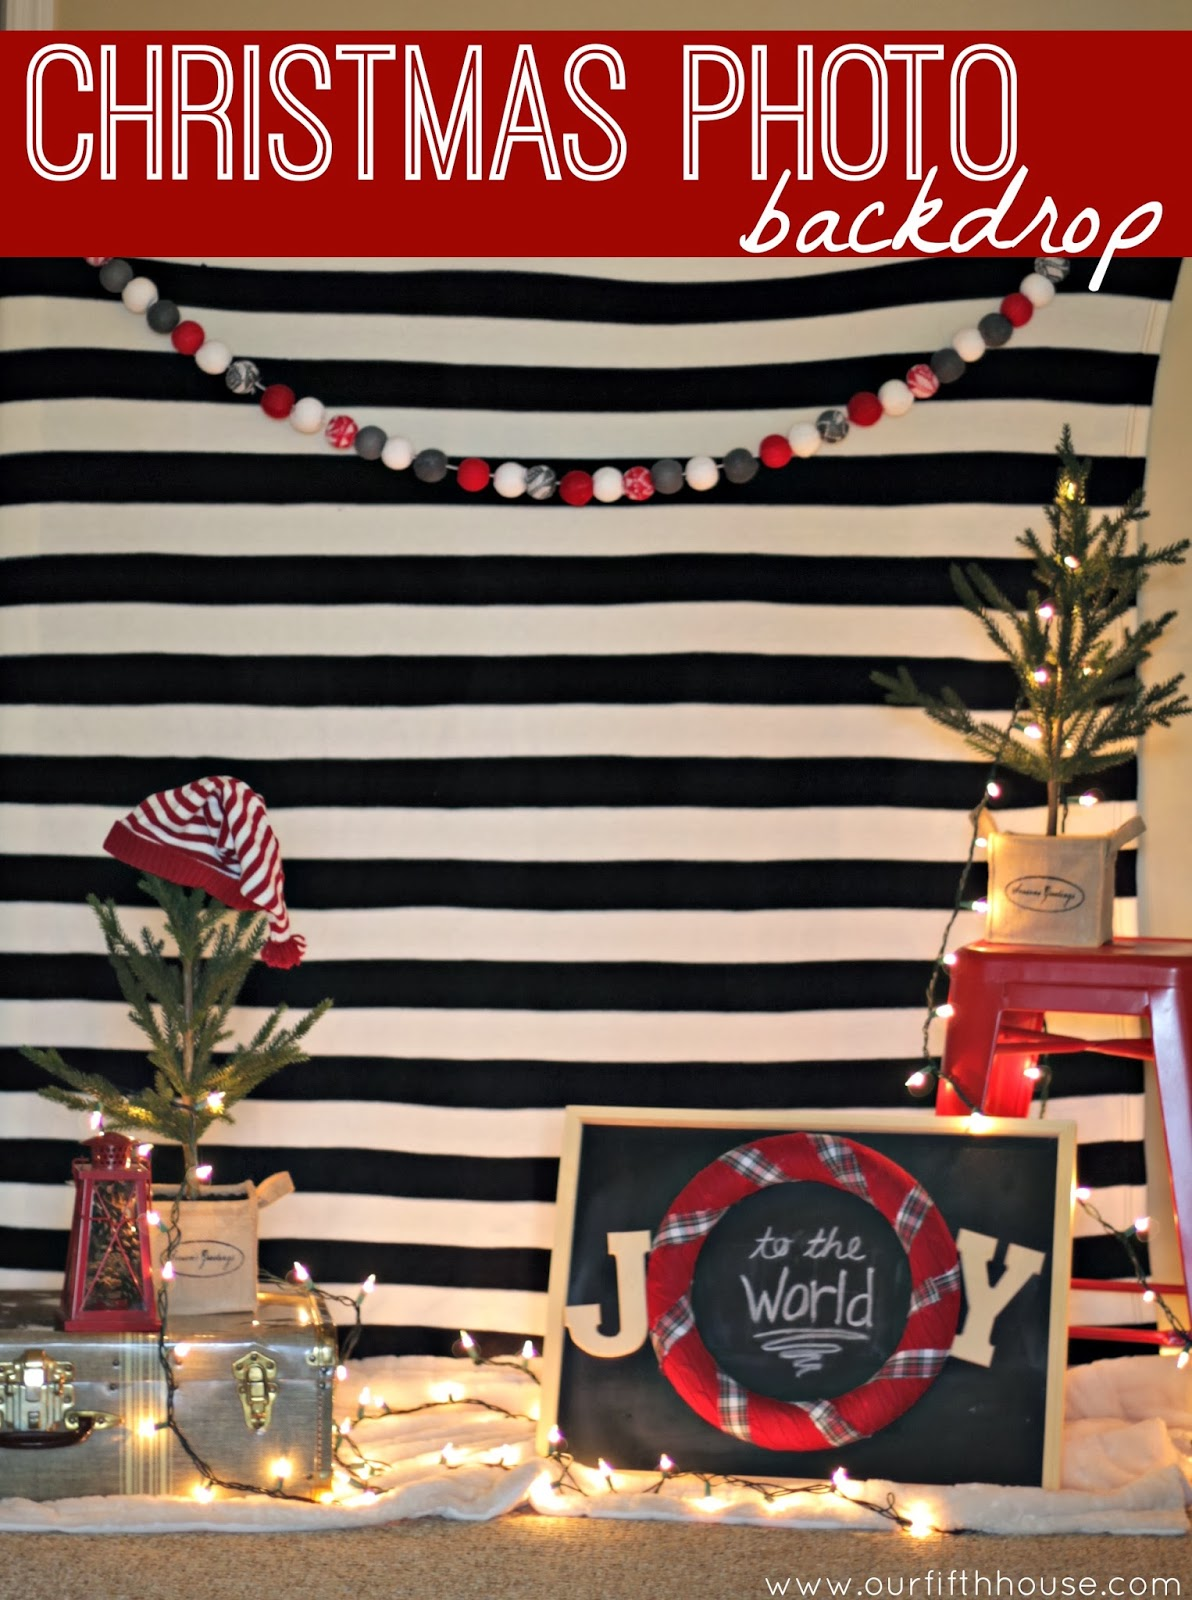 Blog photo booth of the stars photo booth rental chicago il christmas photo booth props and backdrops solutioingenieria Choice Image